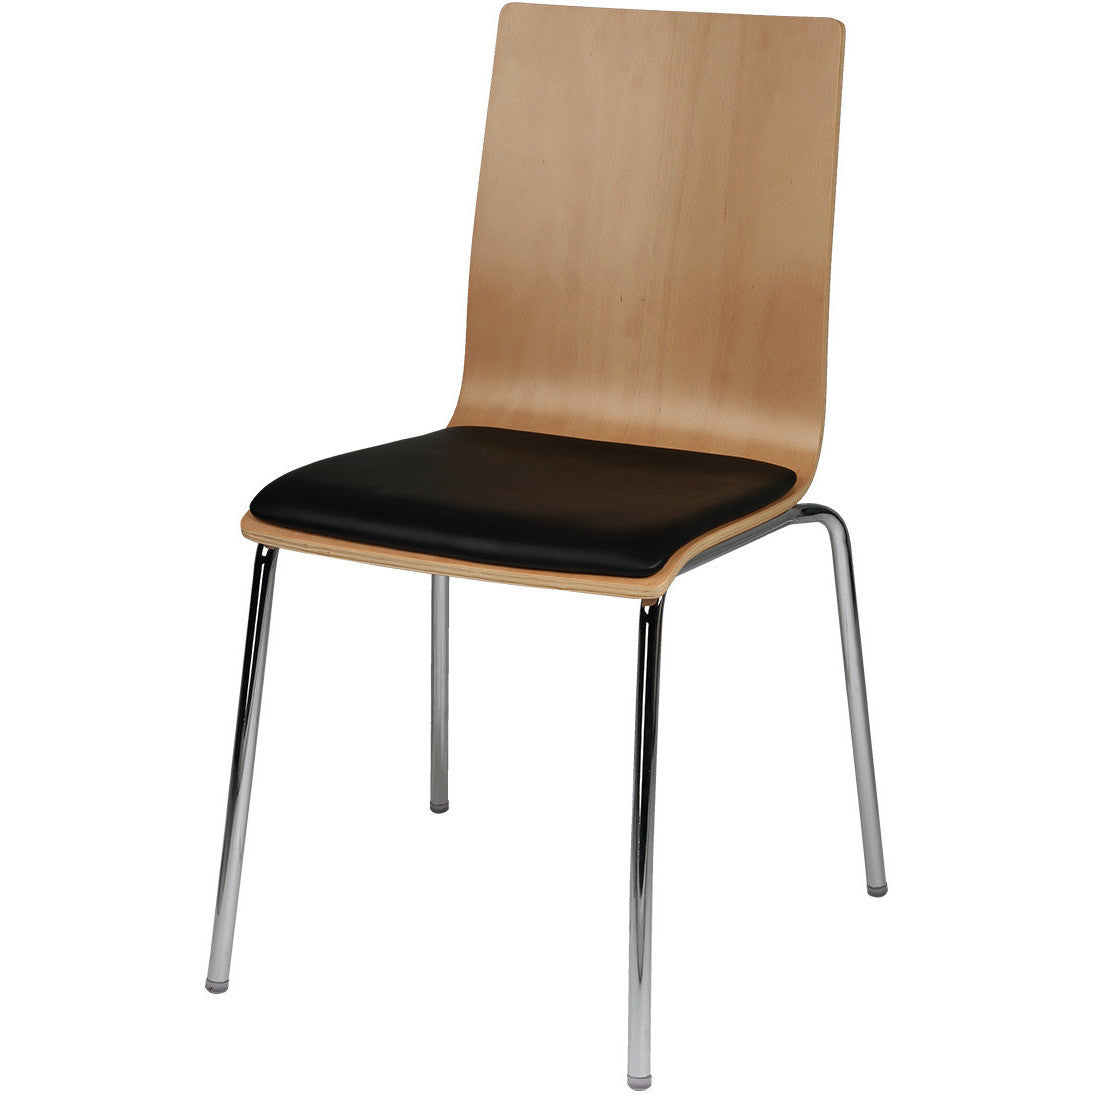 WoodForm 411P, Chairs, Cammac, - Cammac